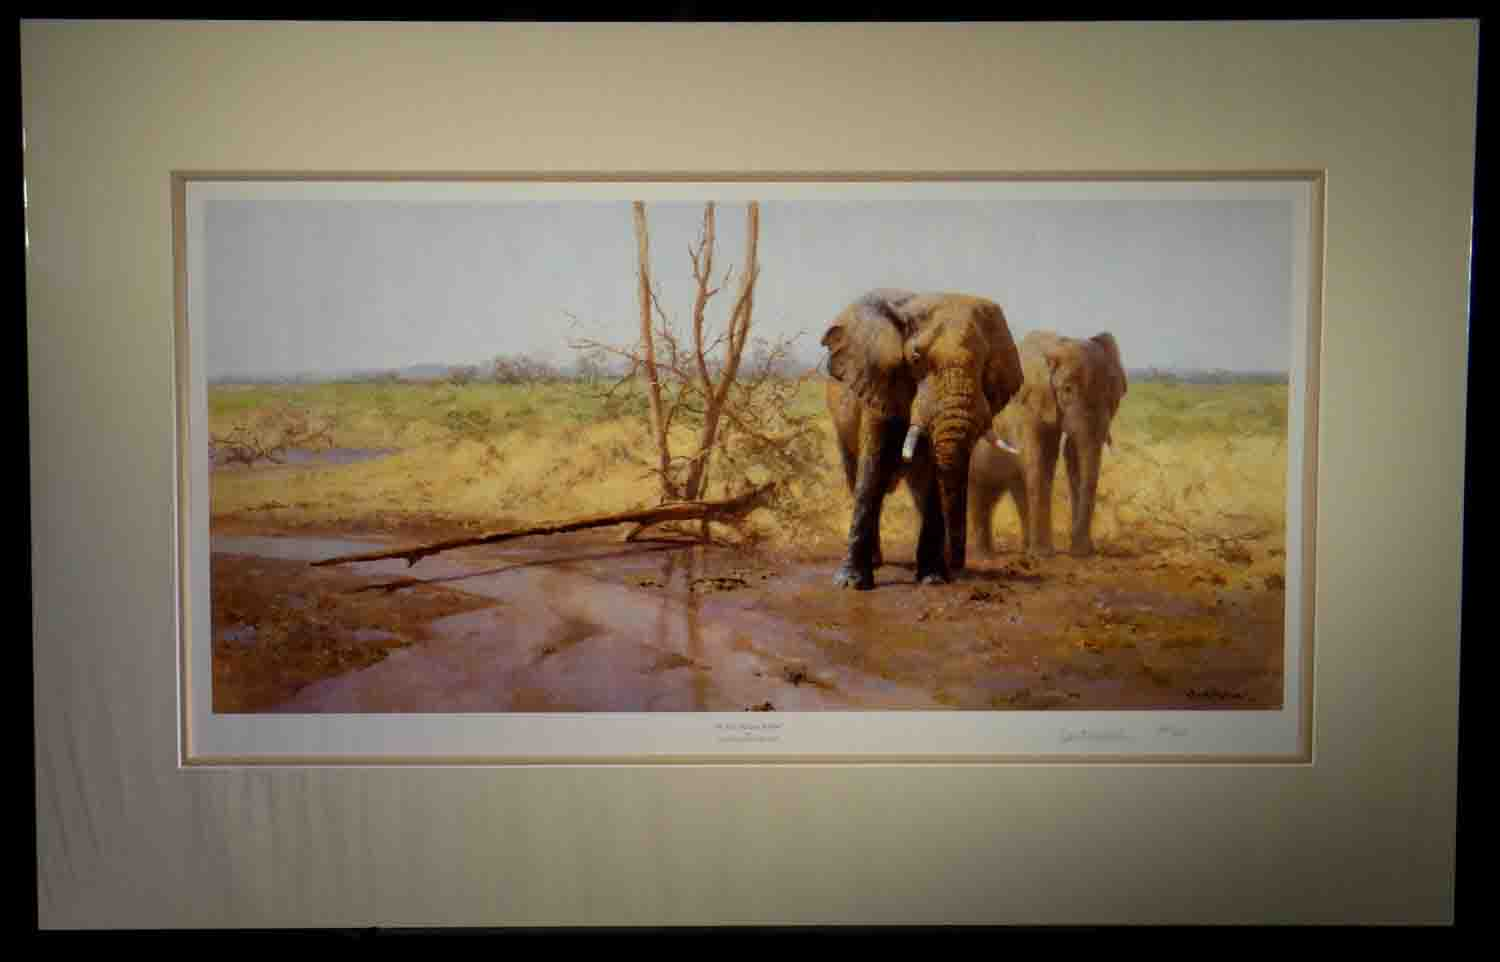 david shepherd, signed limited edition print, in the Msai Mara